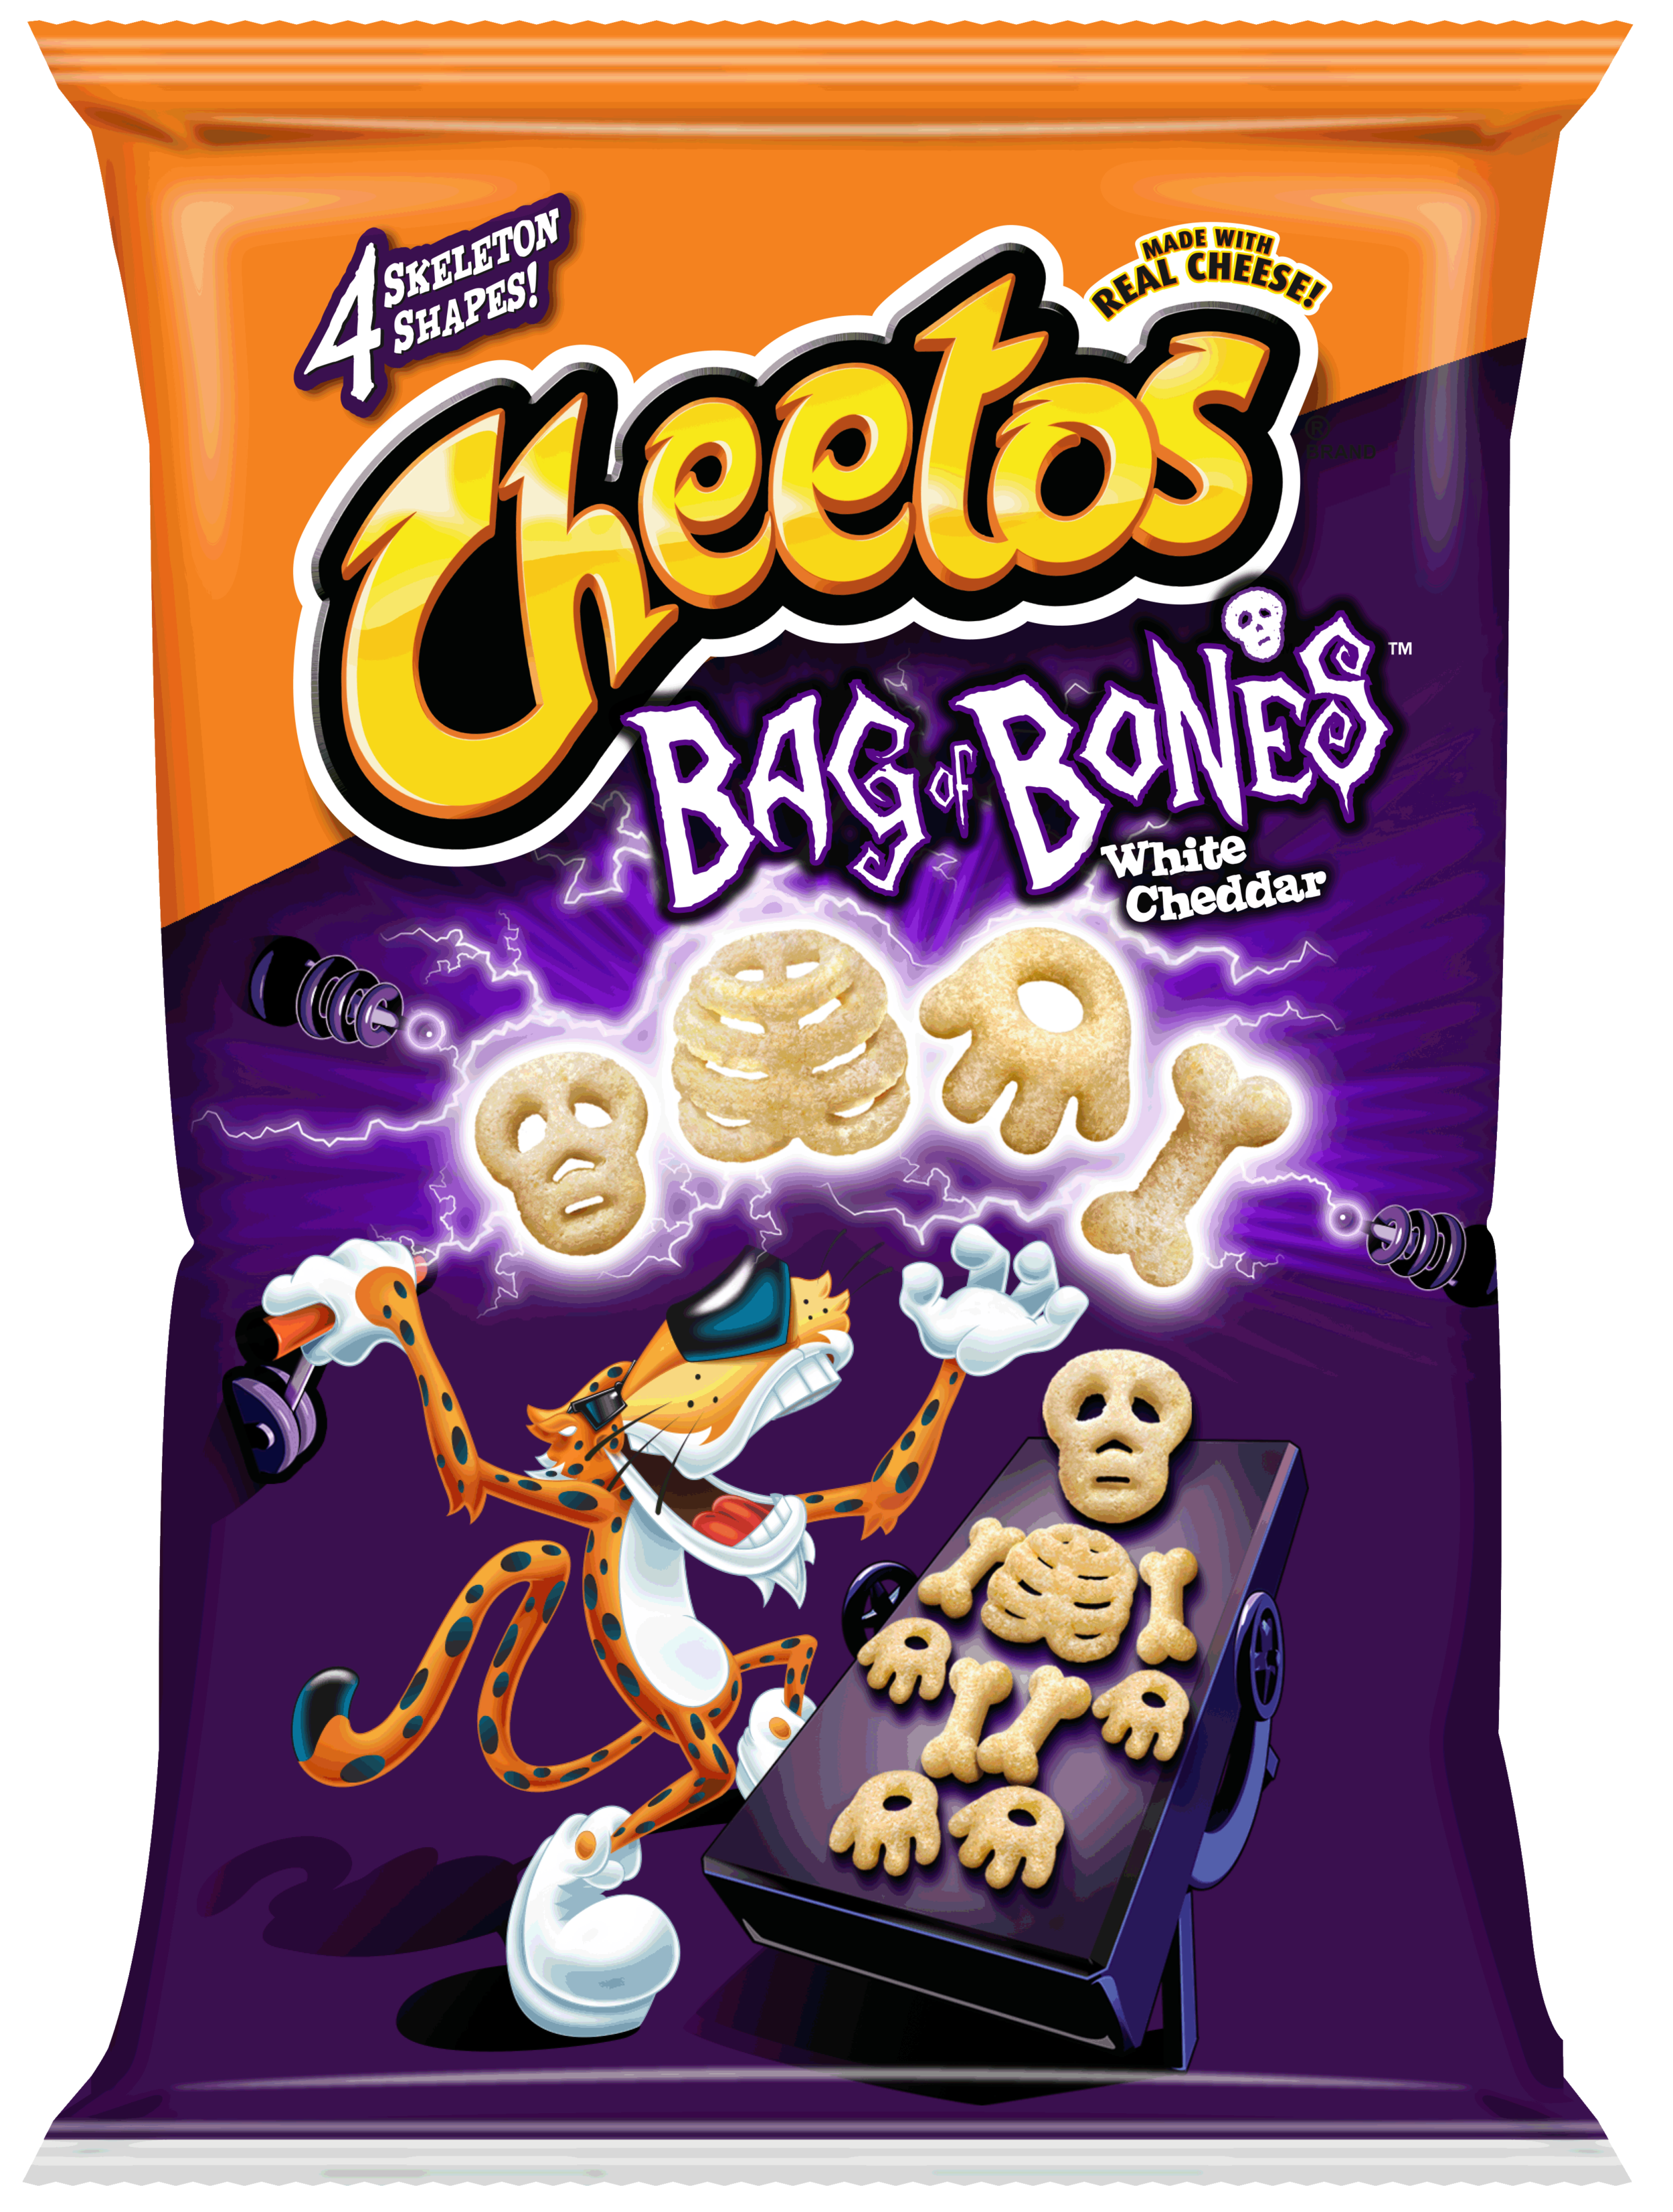 Cheetos-Bag-of-Bones